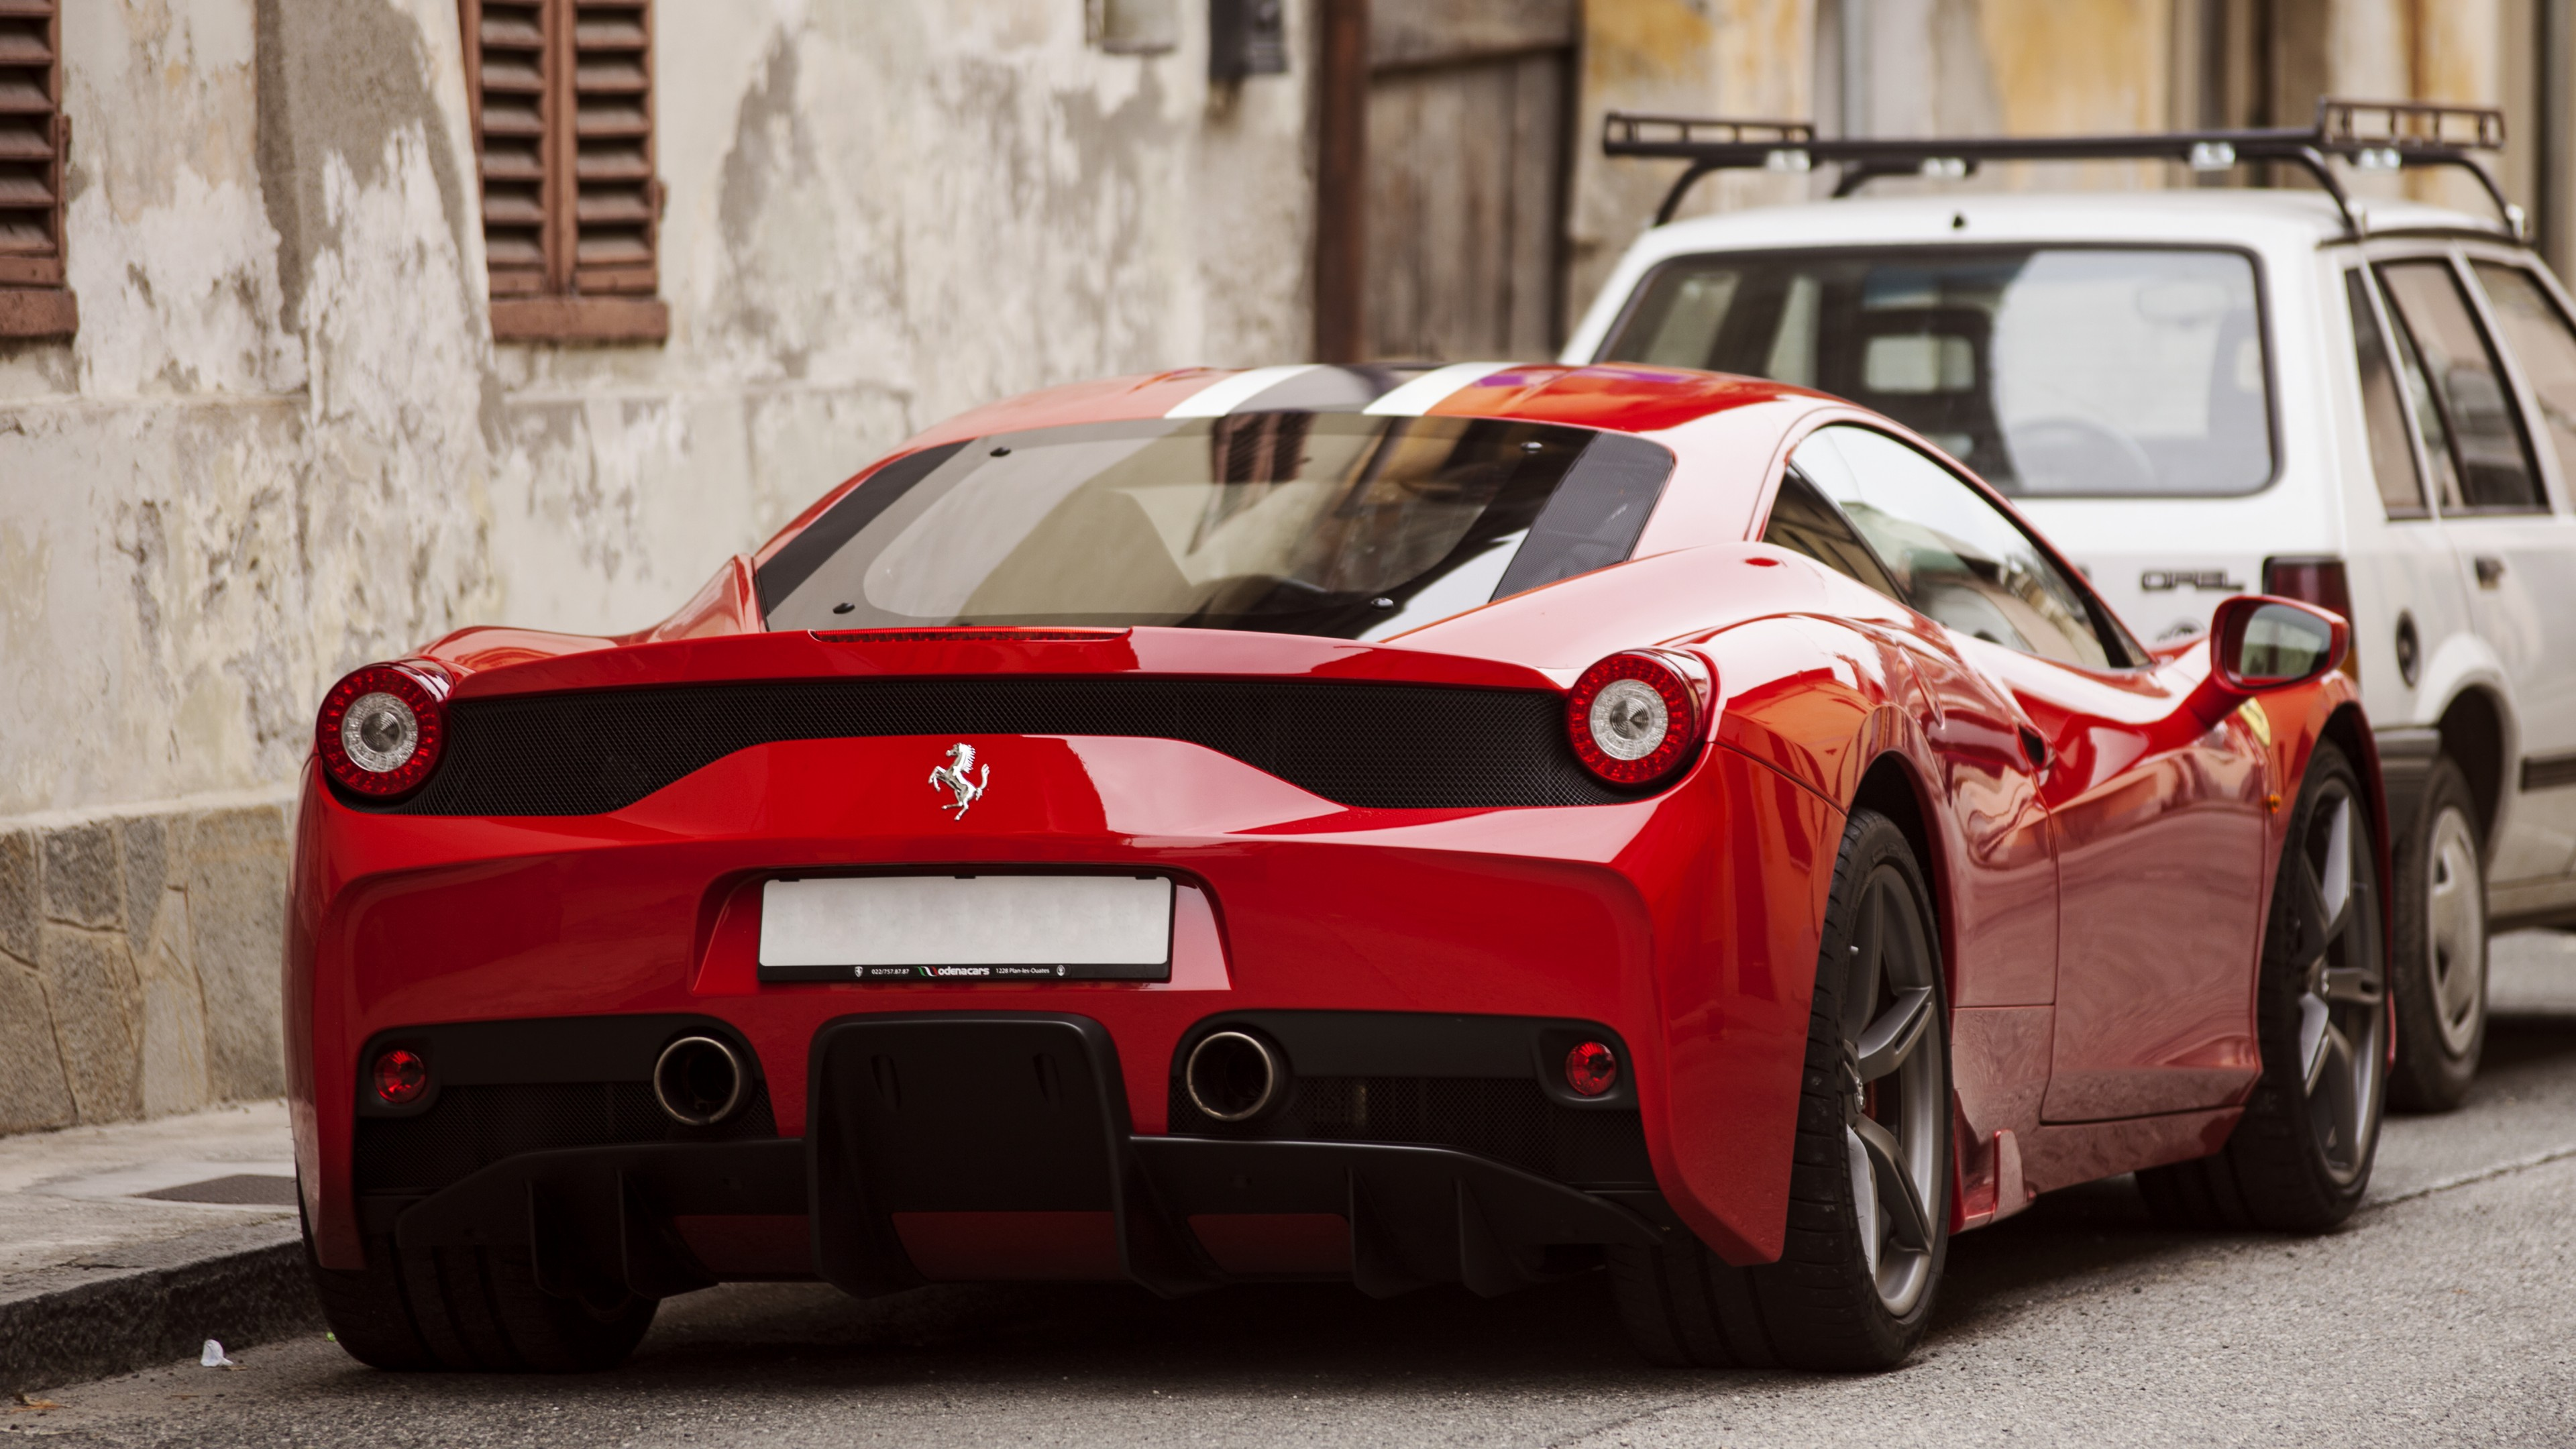 Wallpaper Ferrari 458 Speciale Supercar Back View Red